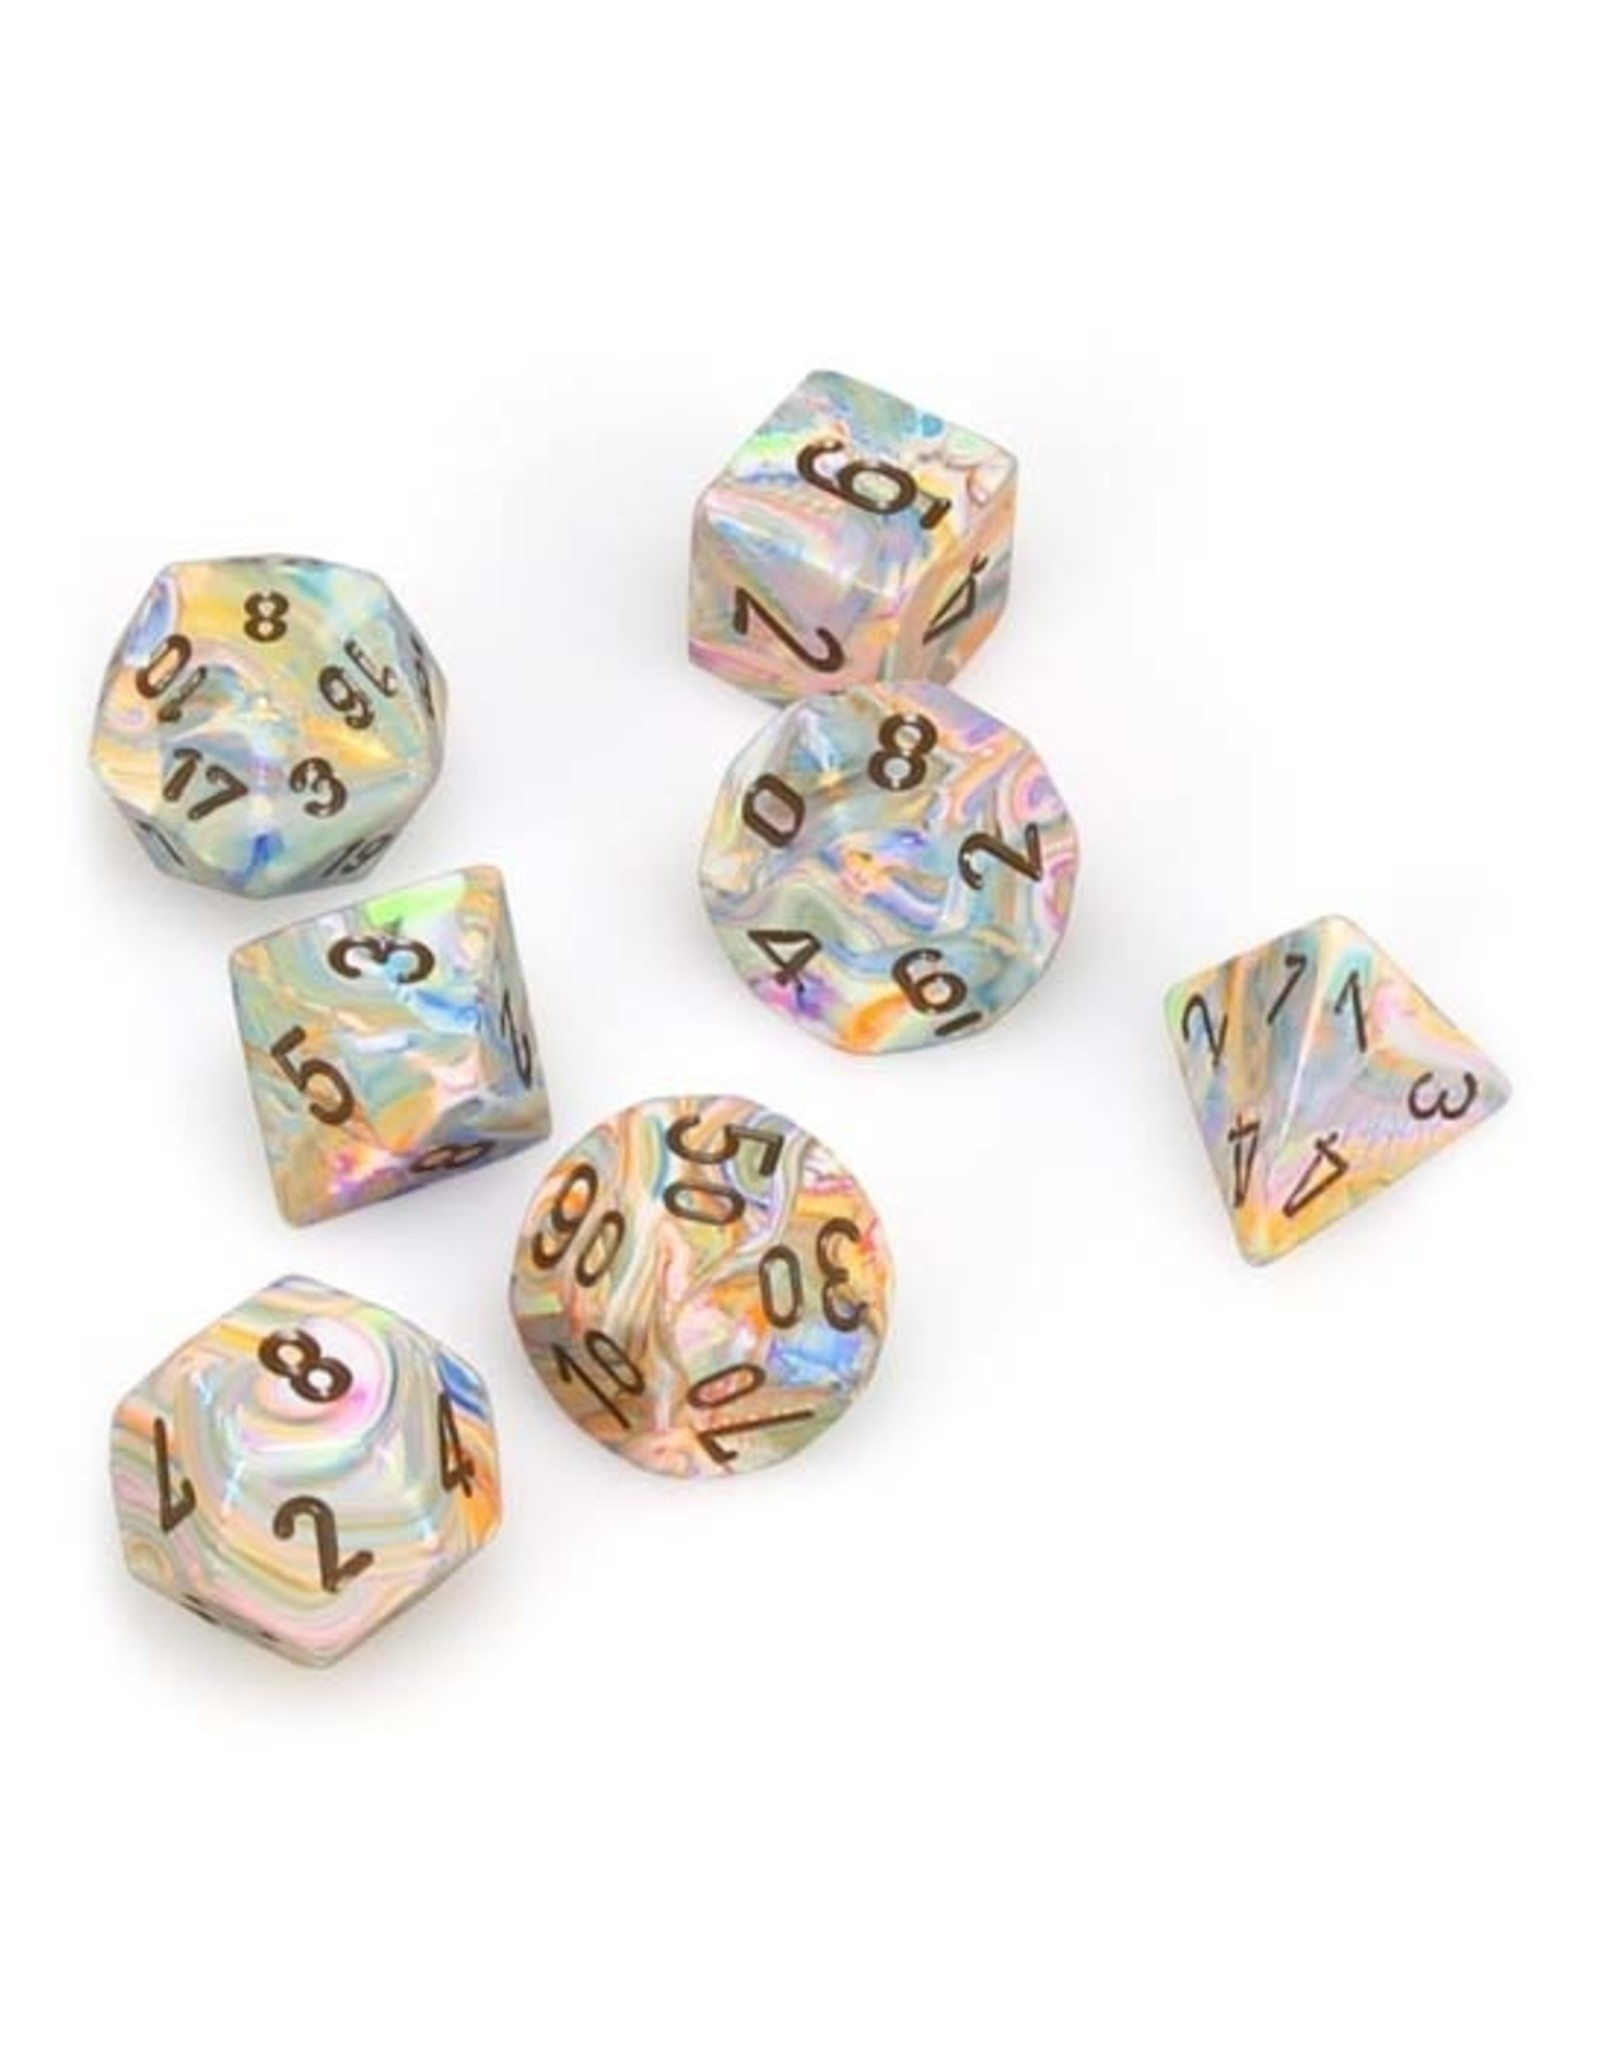 Chessex Chessex: Poly 7 Set - Festive - Vibrant w/ Brown